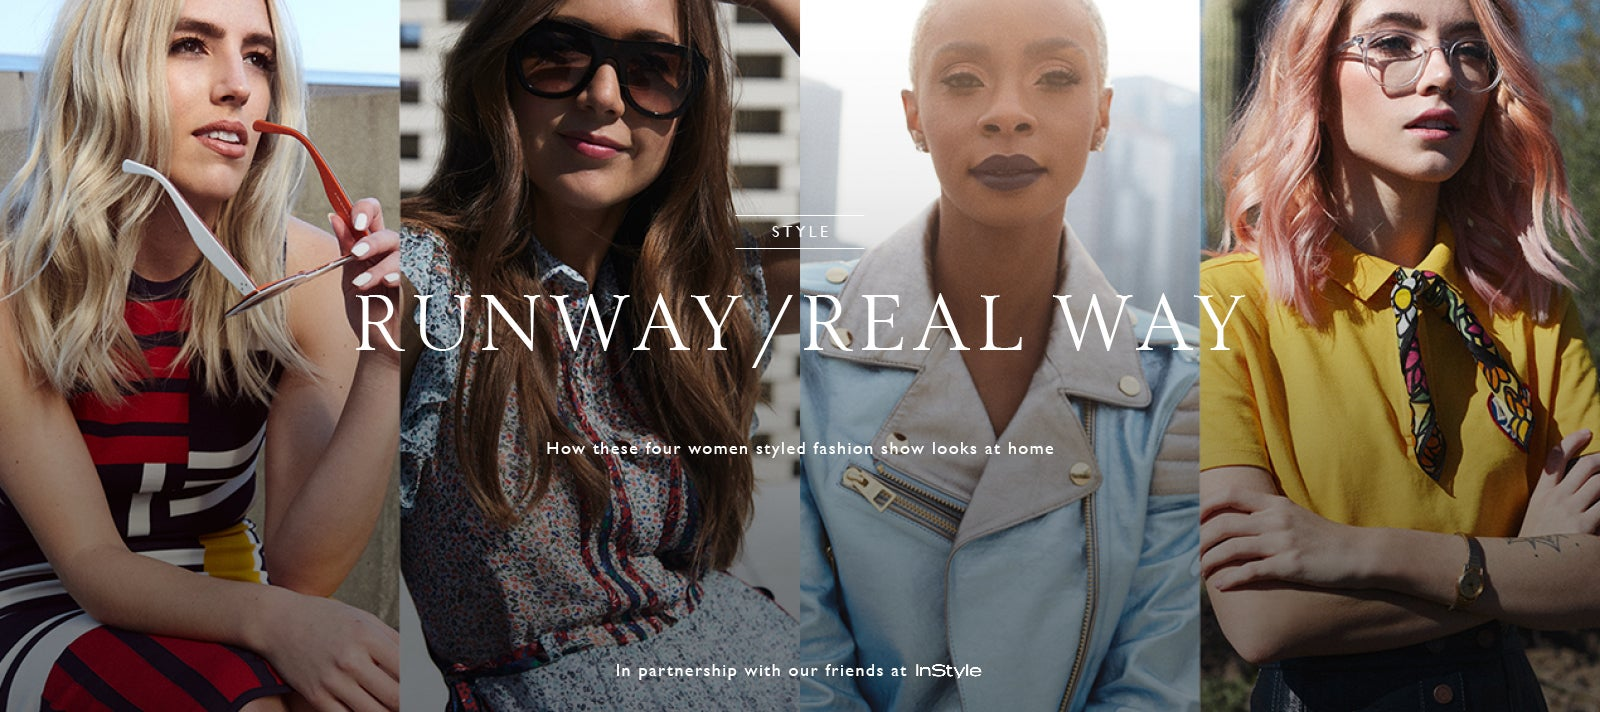 Four women modeling Tommy Hilfiger- 'from runway to real way'.